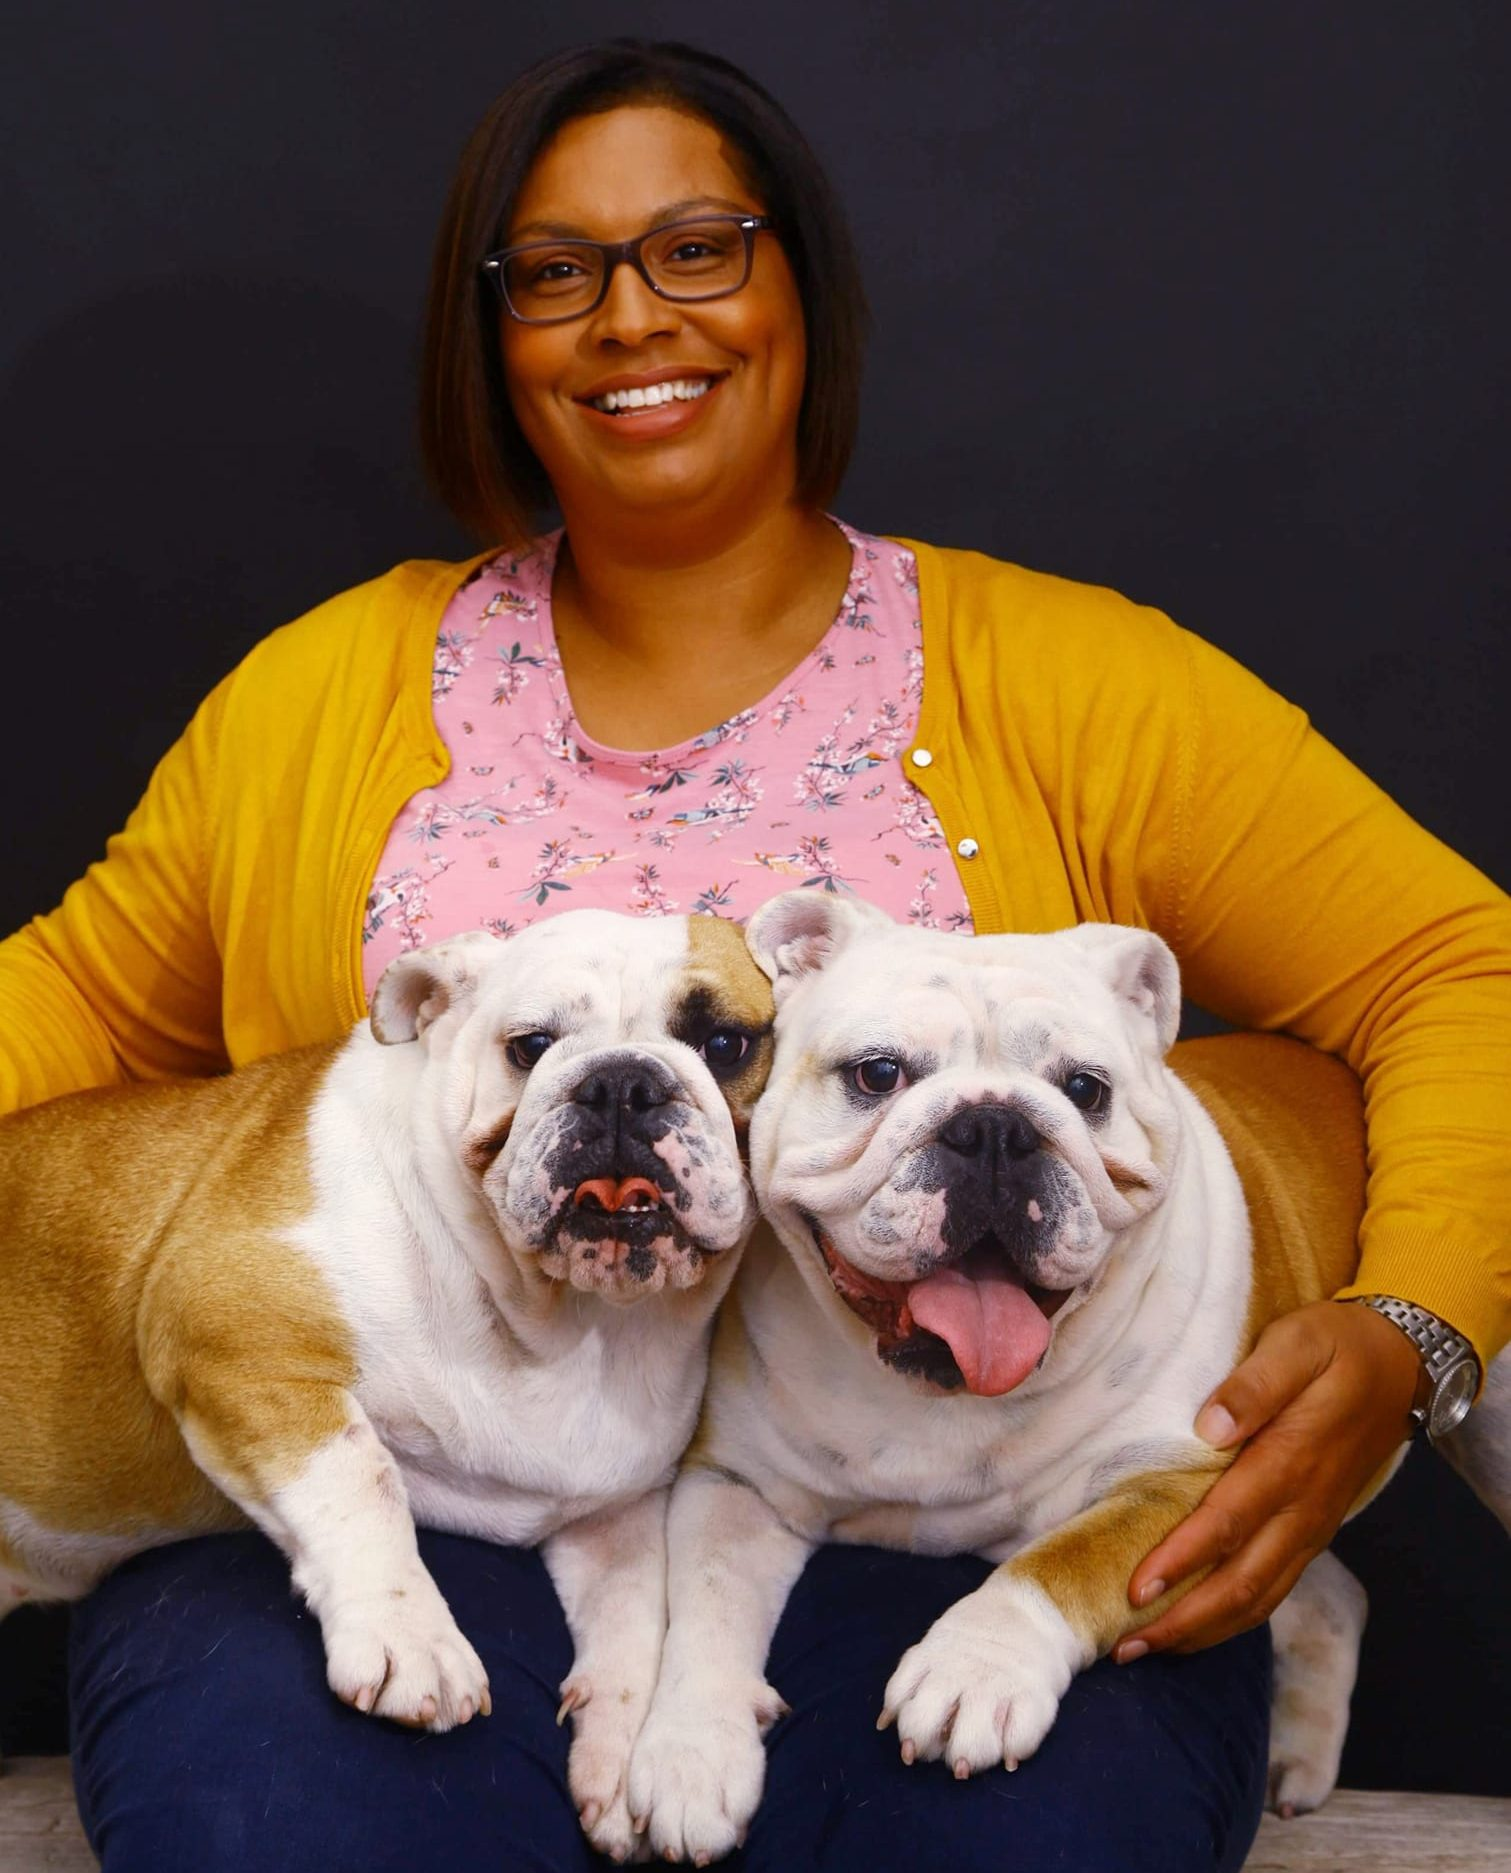 Sara with two Bulldogs